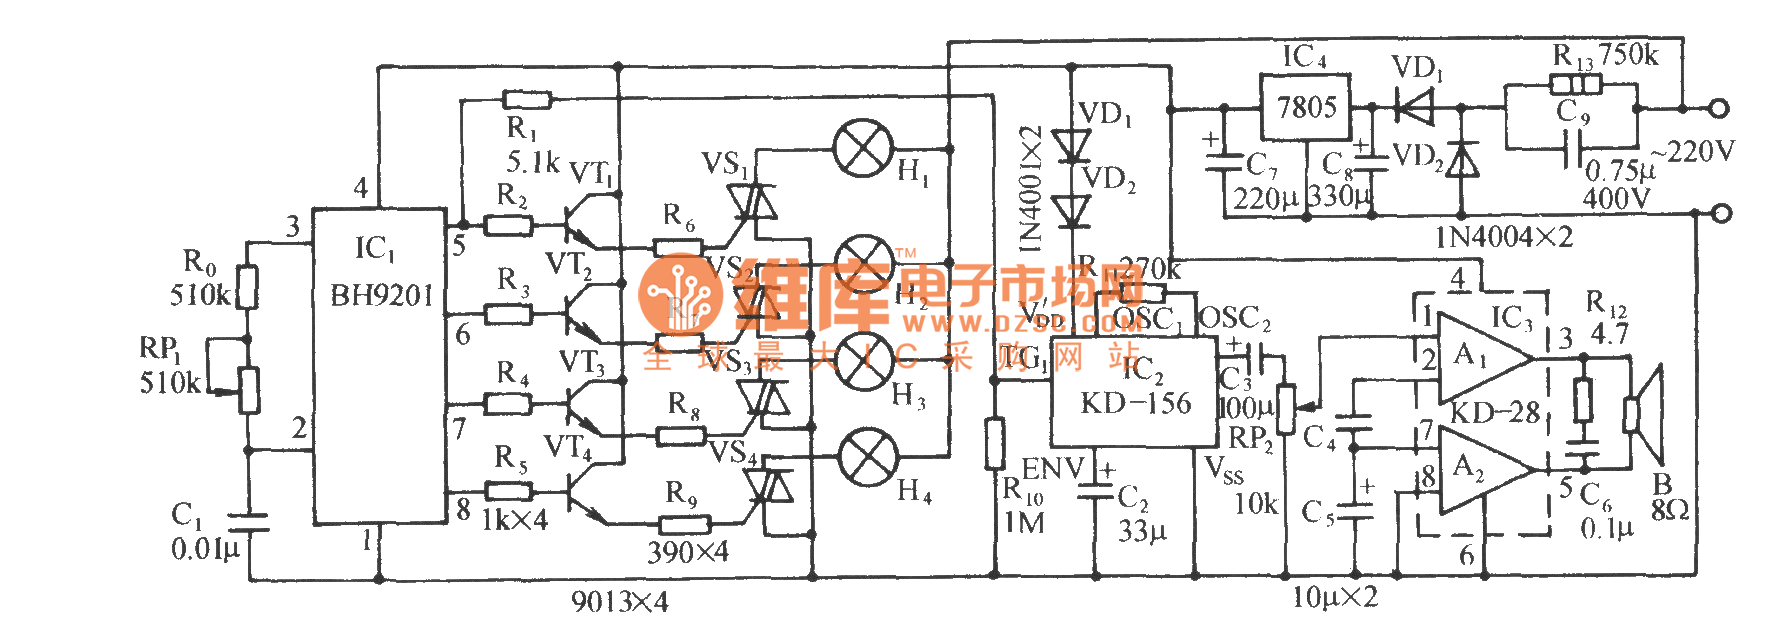 of a lamp control circuit of scr trigger control circuit a sounding